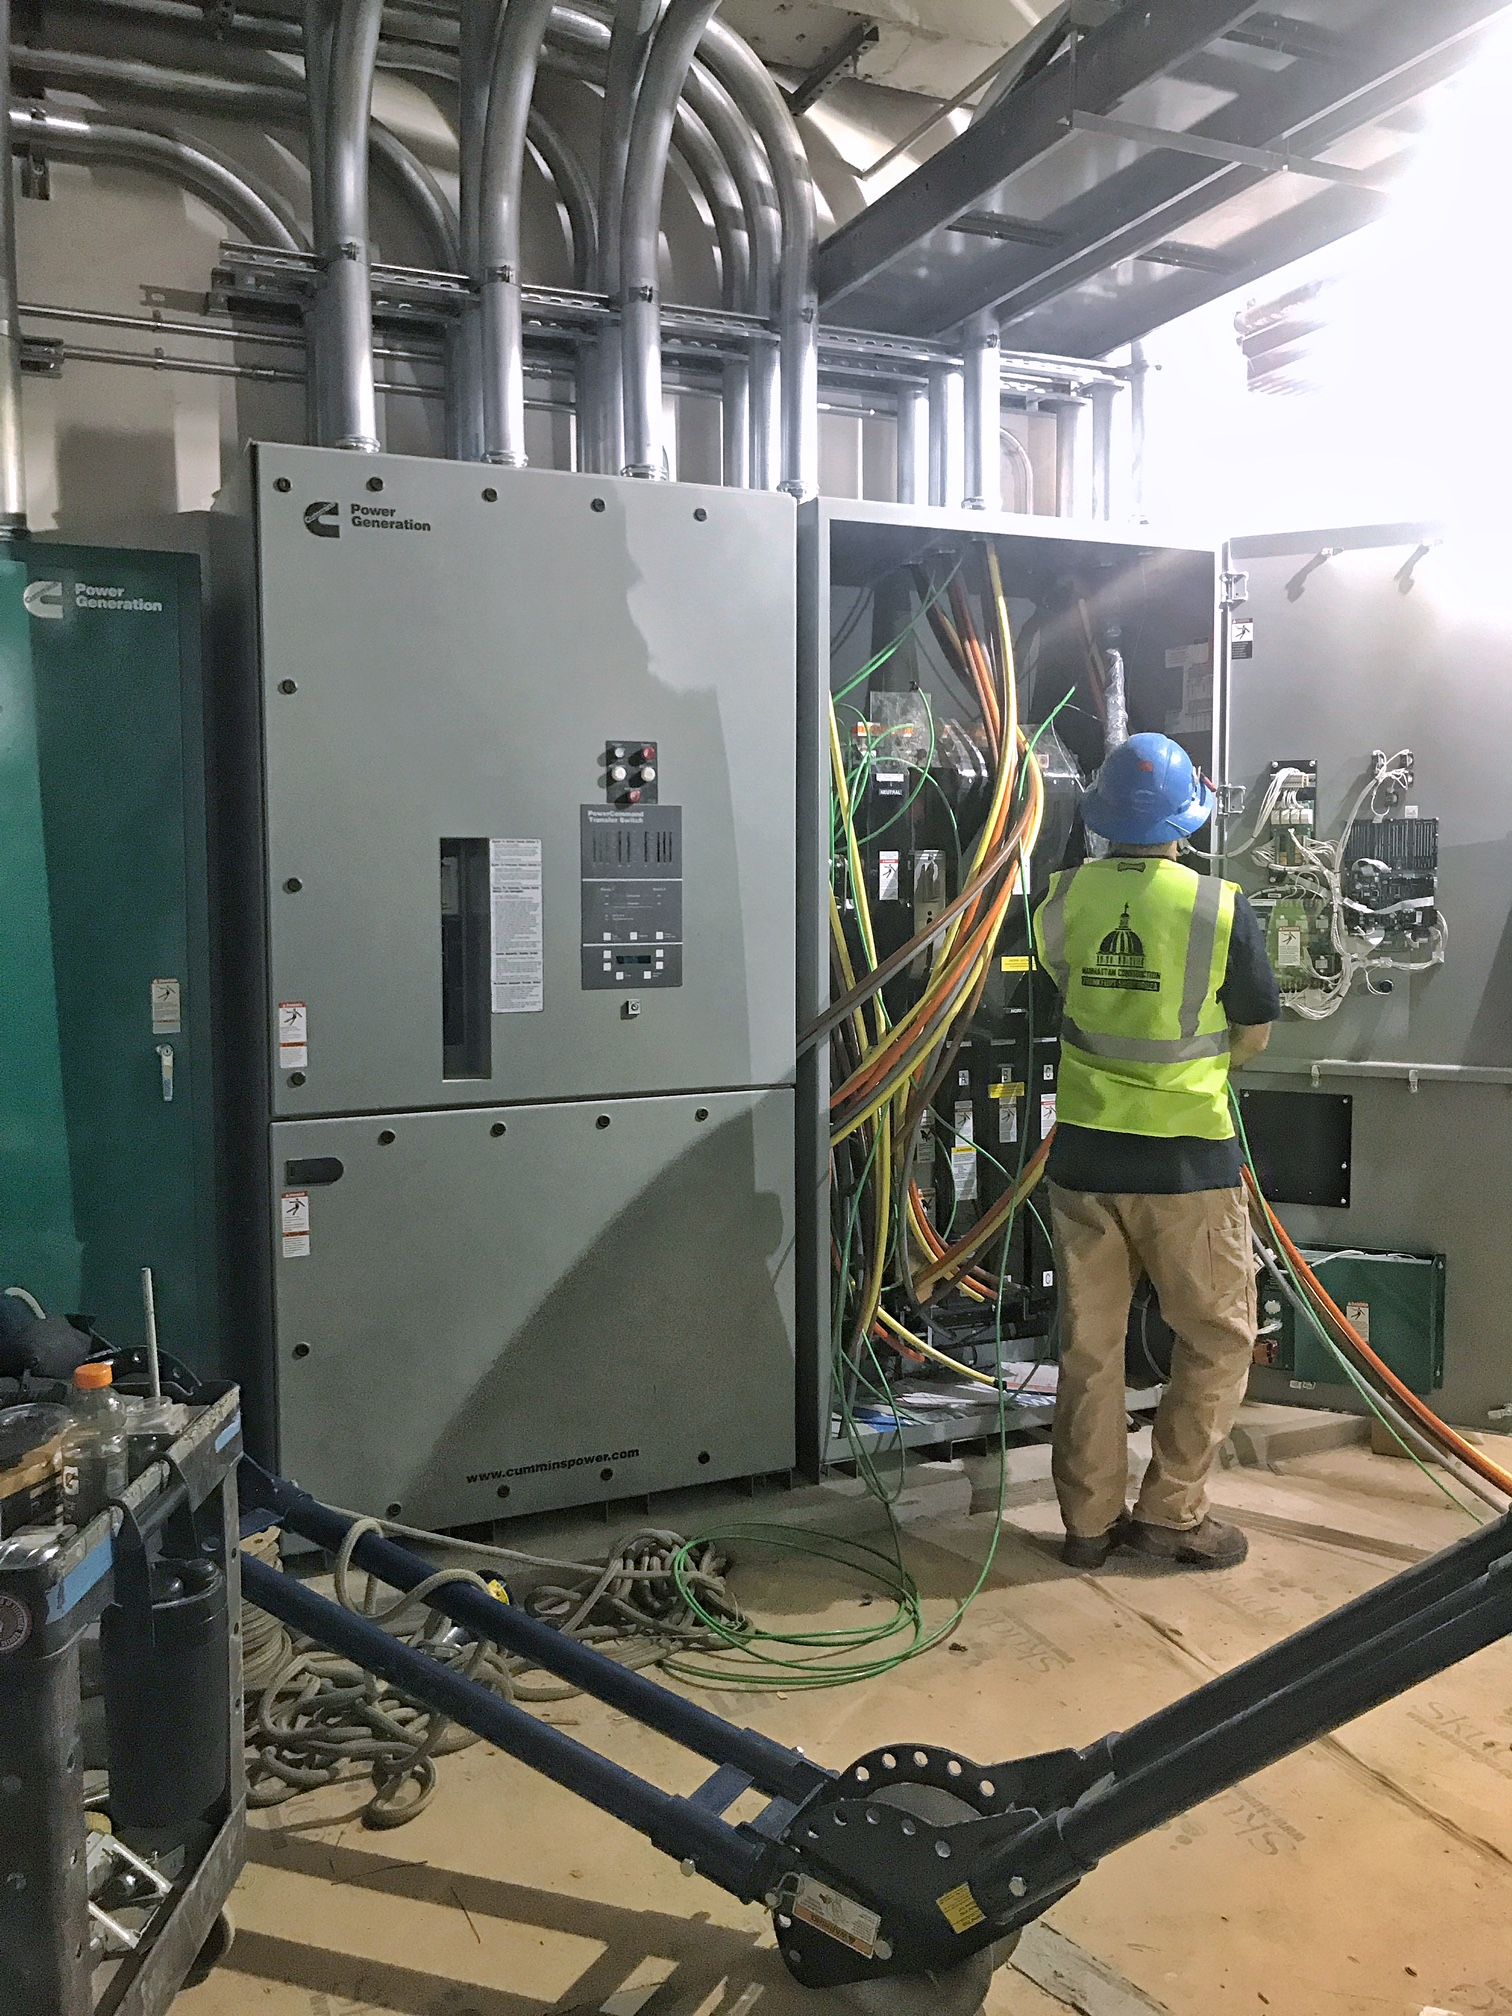 ...these shiny new electrical panels down the hall.